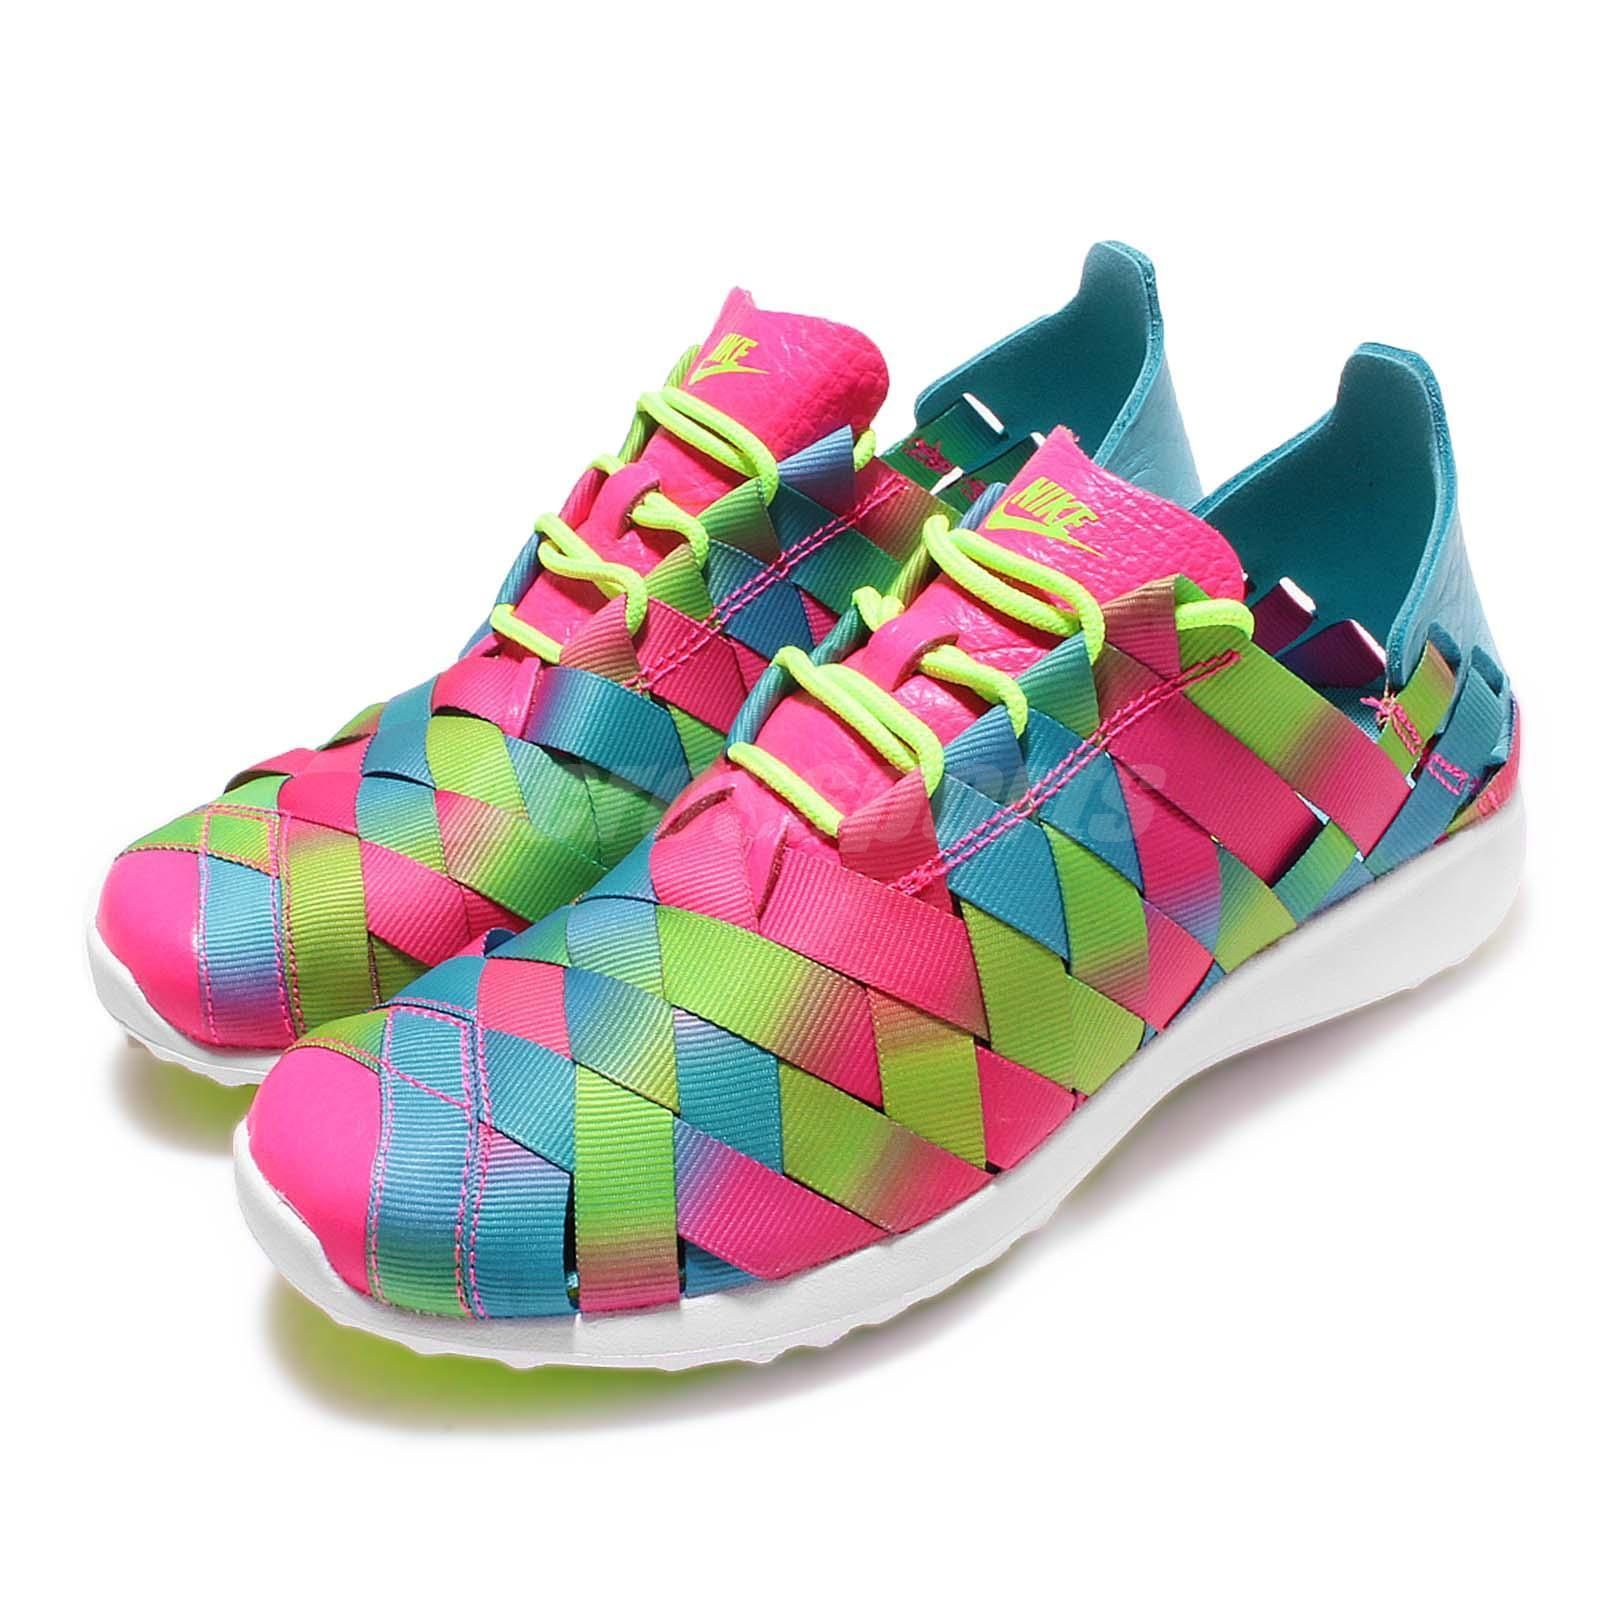 Wmns Nike Juvenate Woven PRM Premium Multi-Color Womens Shoe Trainers  833825-400 da6dfbc74c